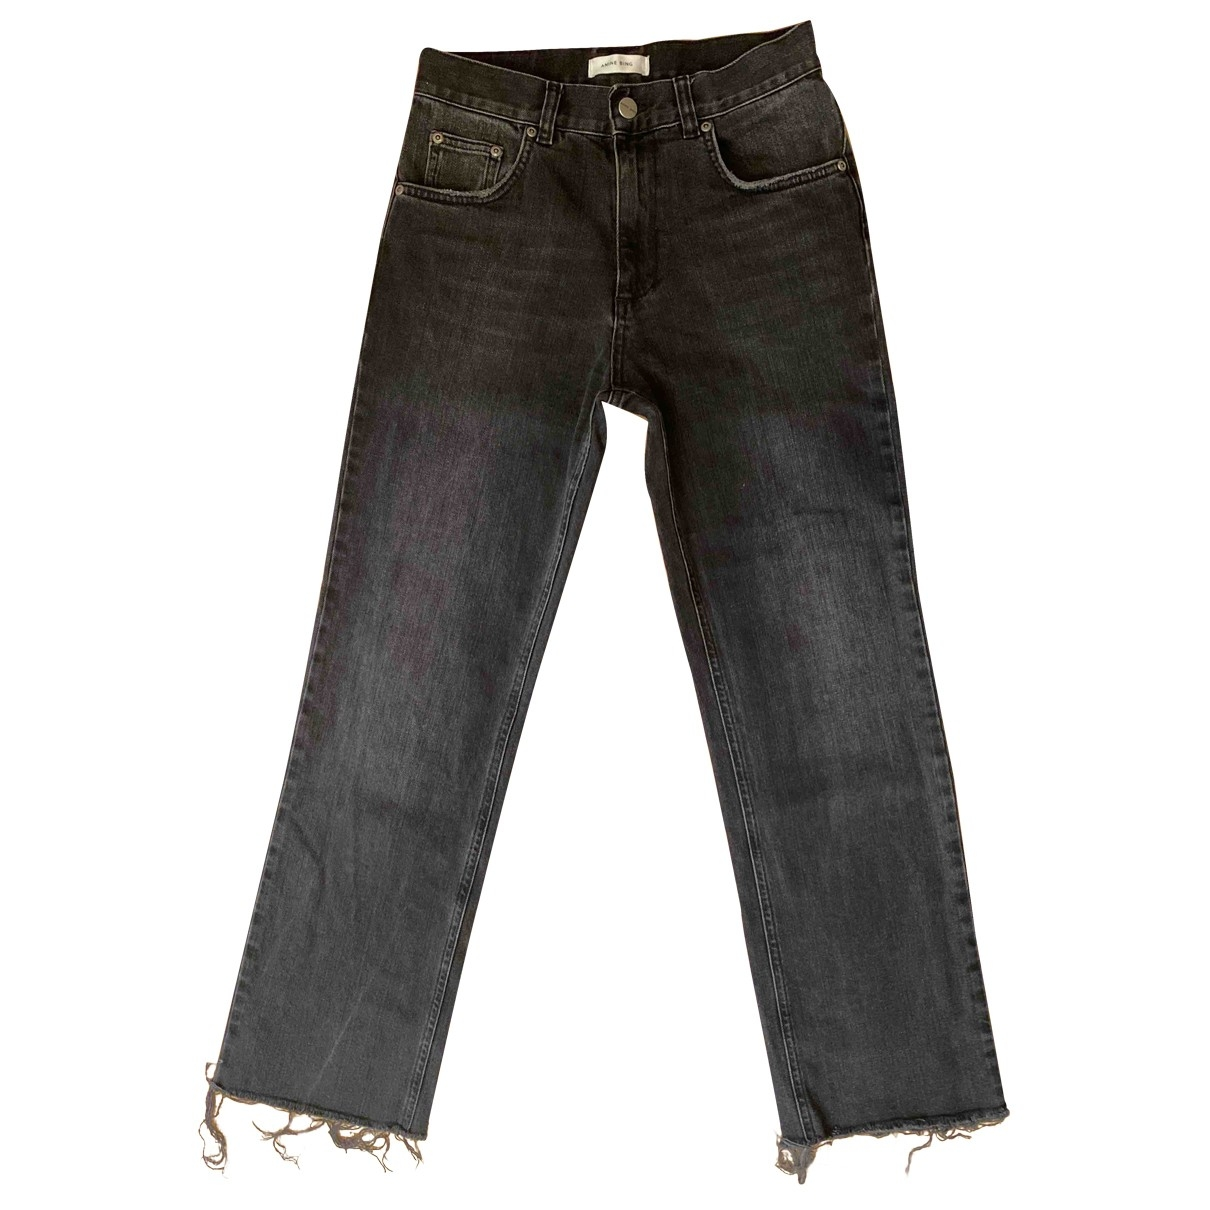 Anine Bing \N Grey Denim - Jeans Jeans for Women 25 US